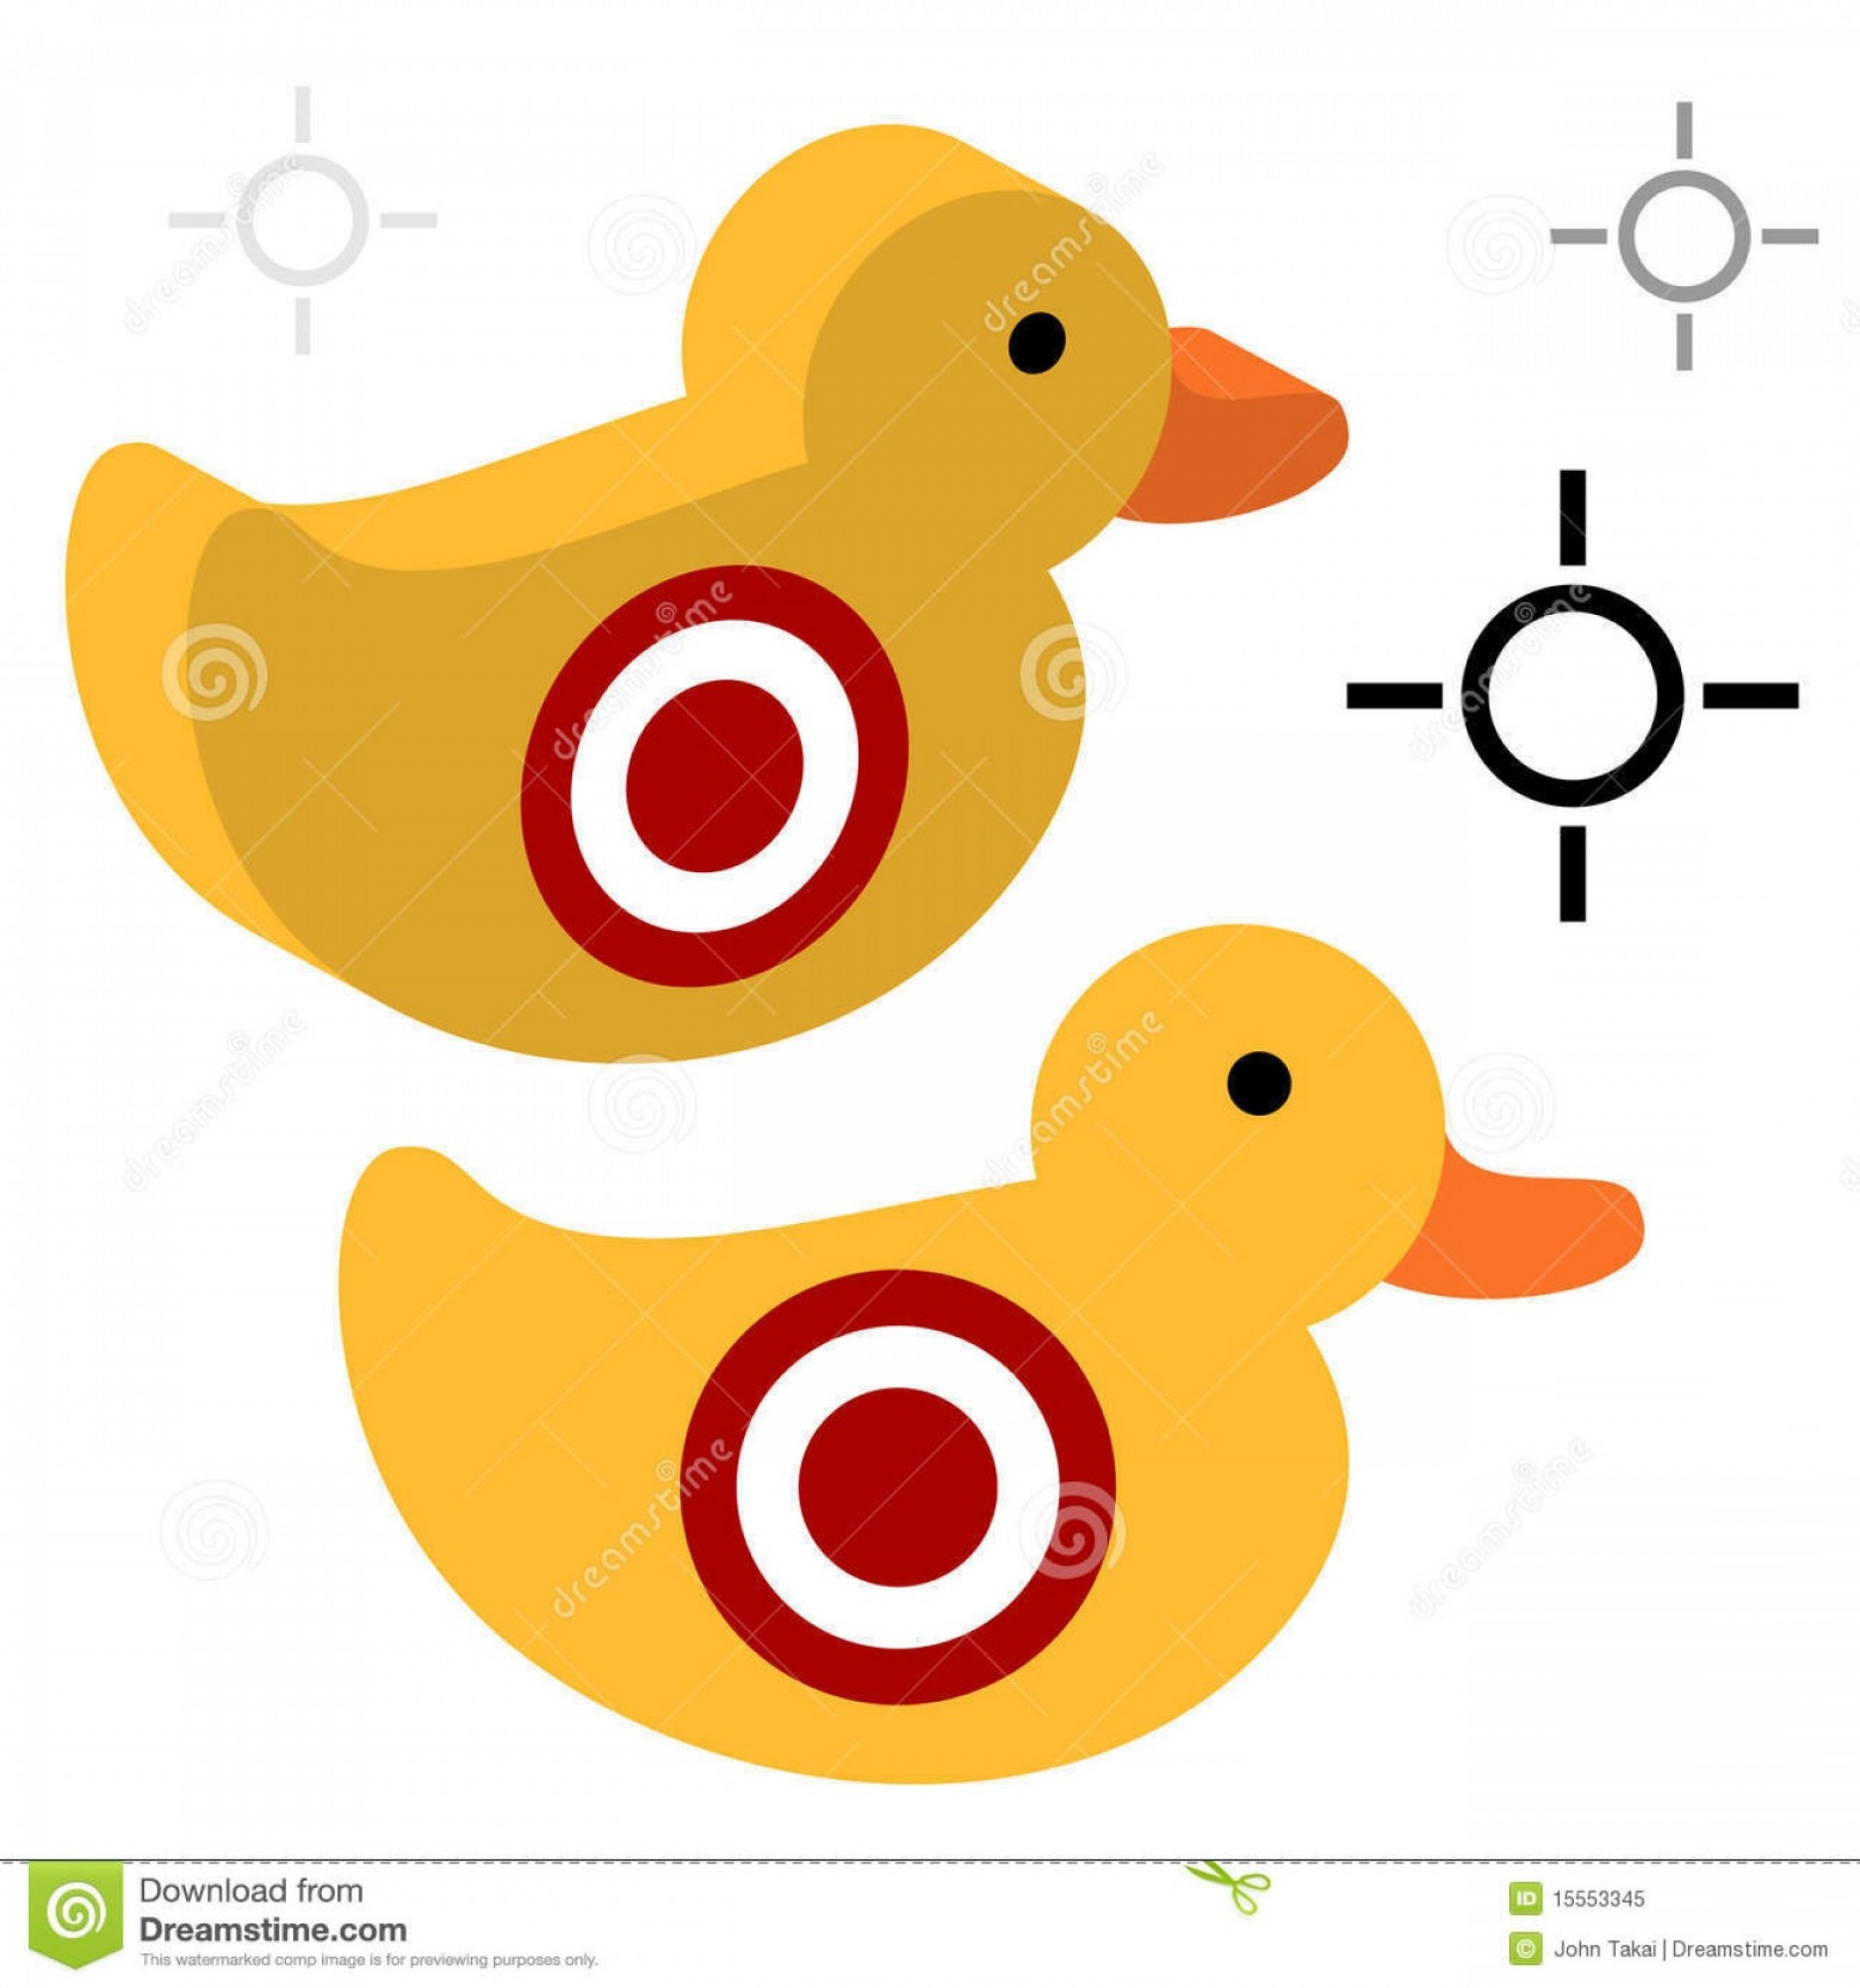 Shot Duck Outline Vector: Royalty Free Stock Photo Duck Shooting Target Image